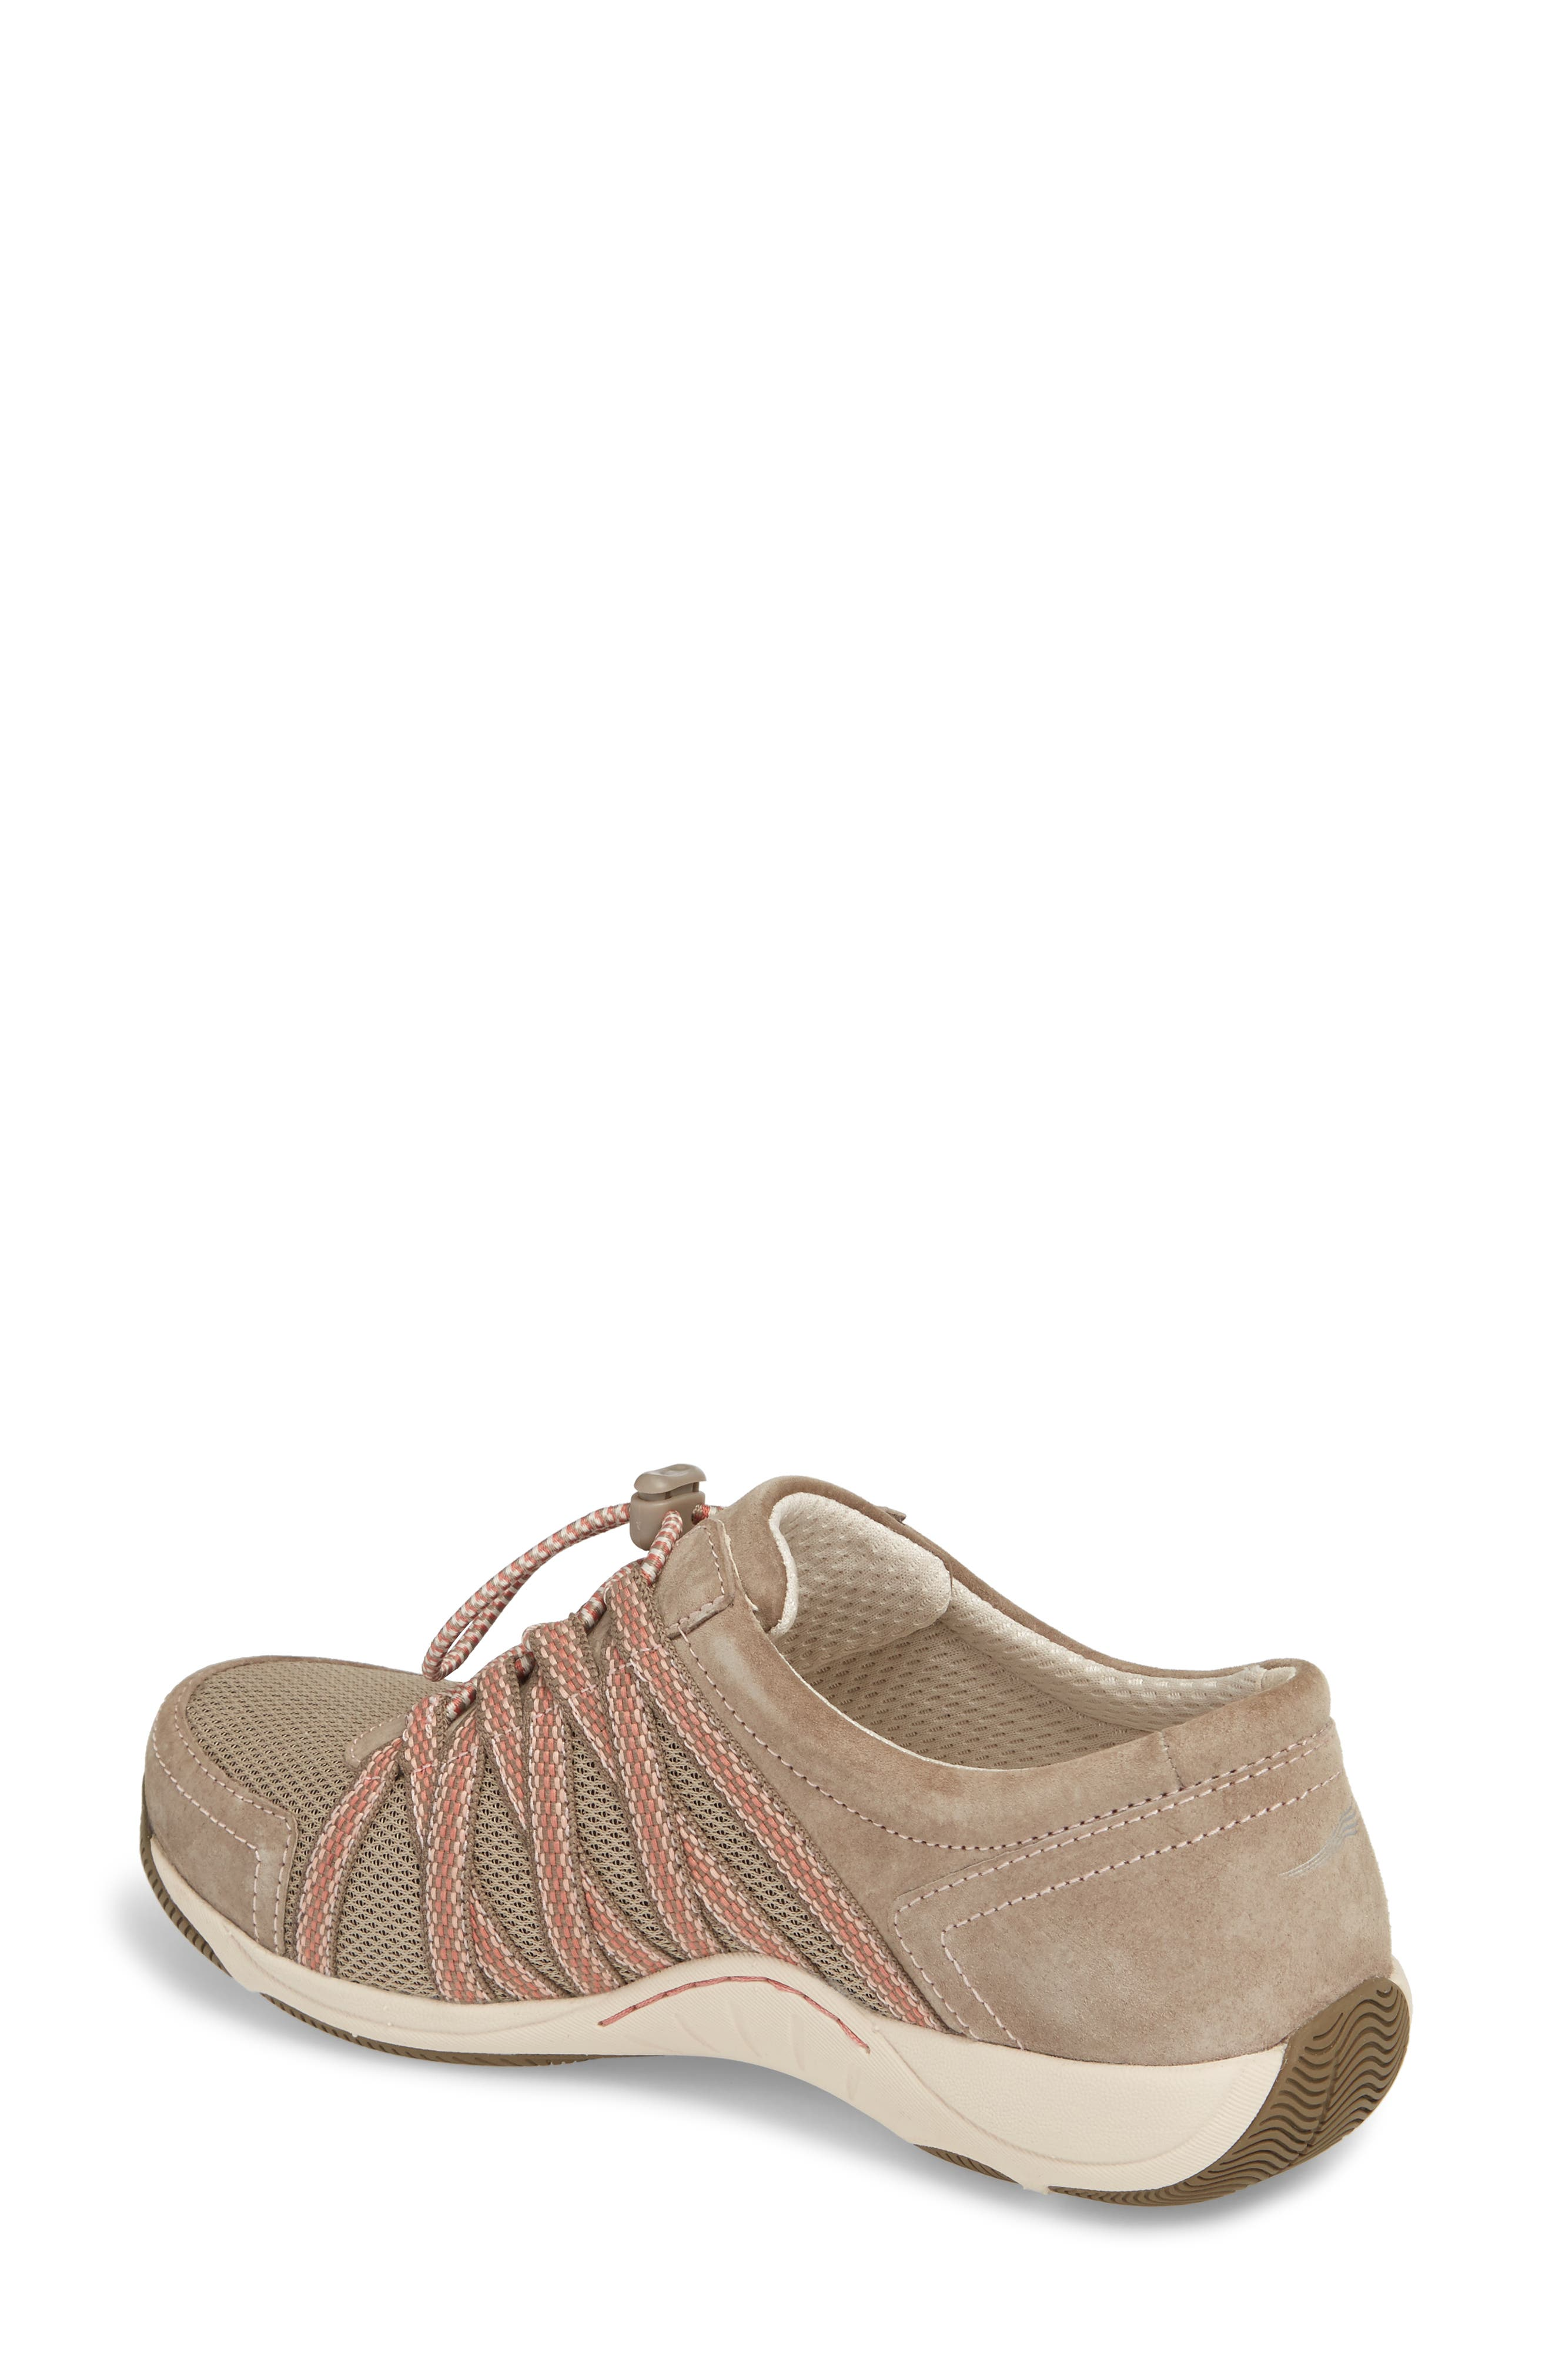 Halifax Collection Honor Sneaker,                             Alternate thumbnail 12, color,